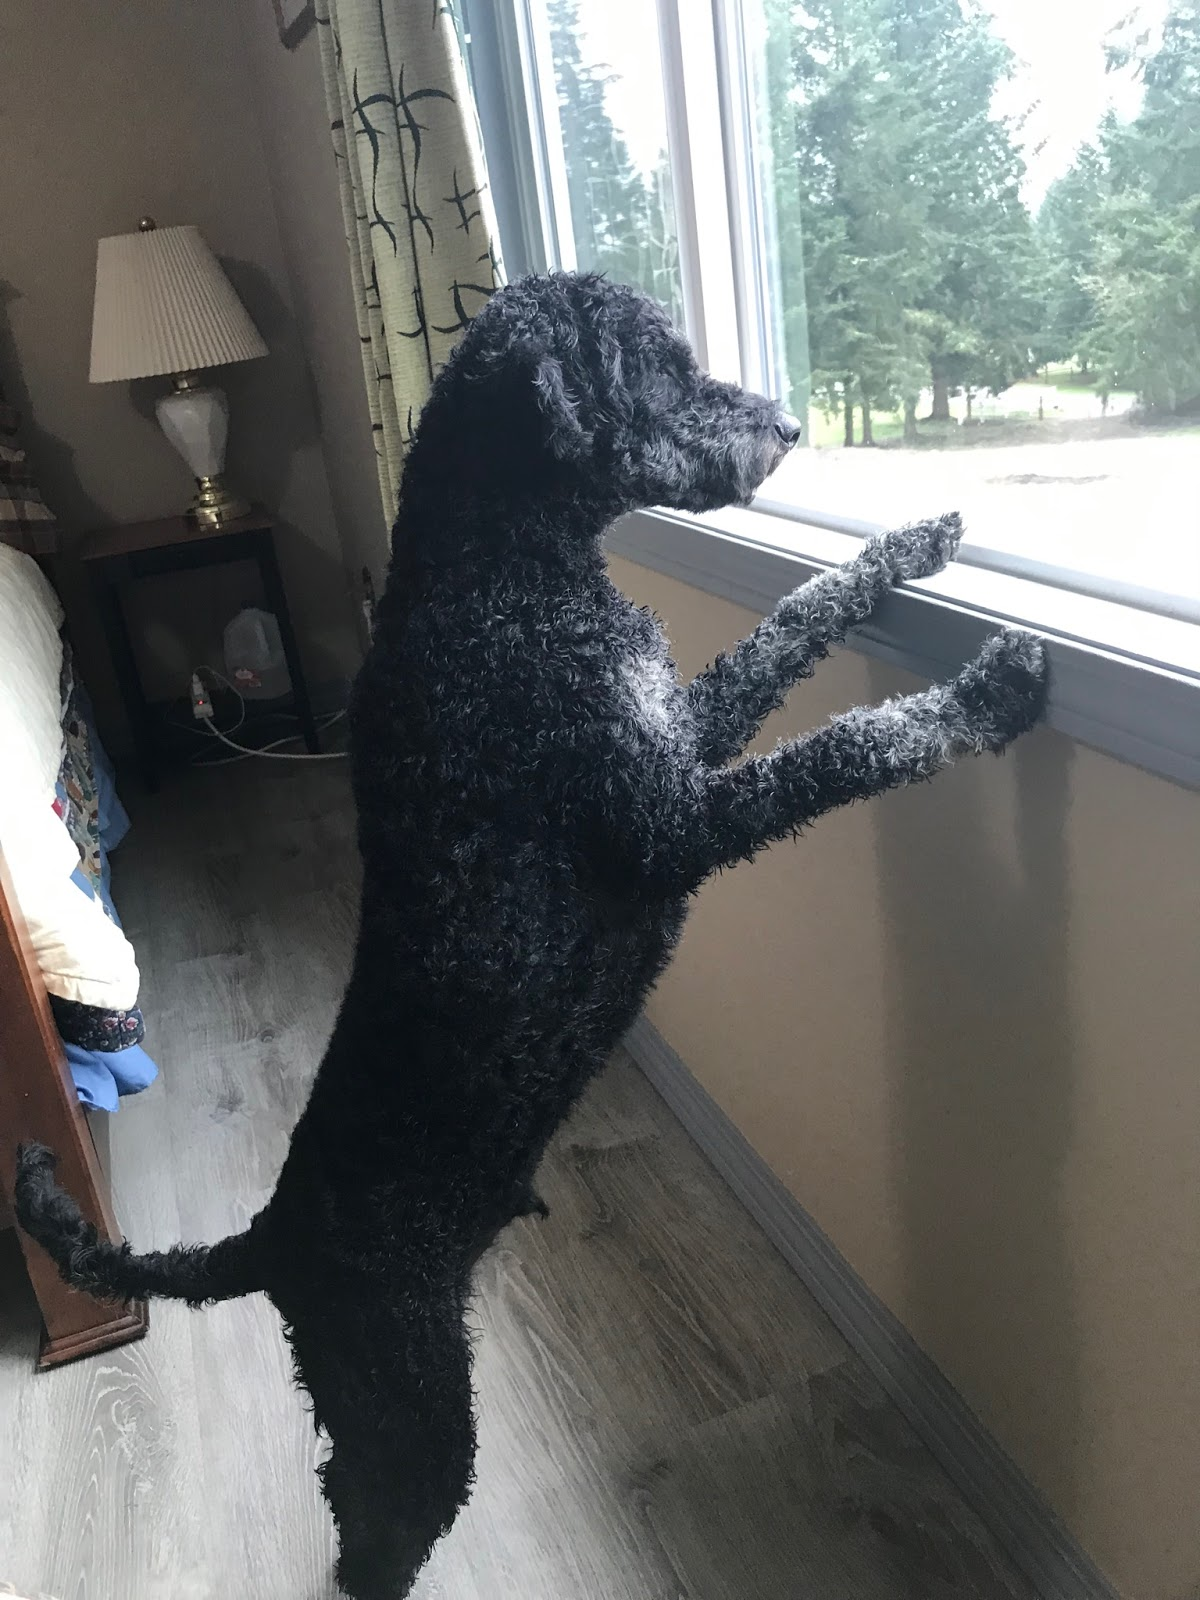 Rufus watching the rains